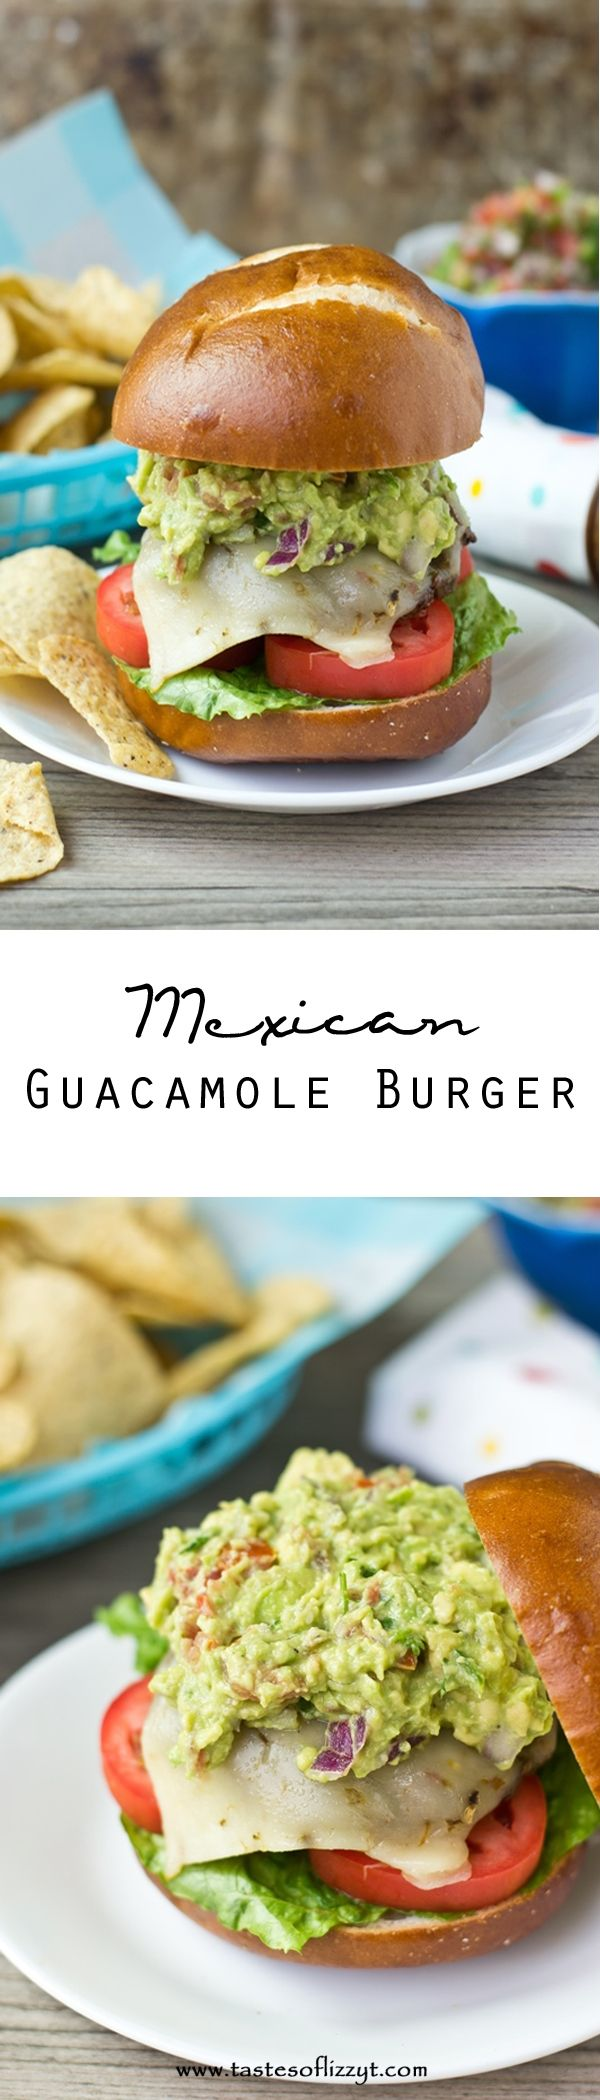 Mexican Guacamole Burgers. If you love guacamole, you'll love these Mexican Guacamole Burgers. They've got Mexican seasoning baked inside and homemade guacamole on top!